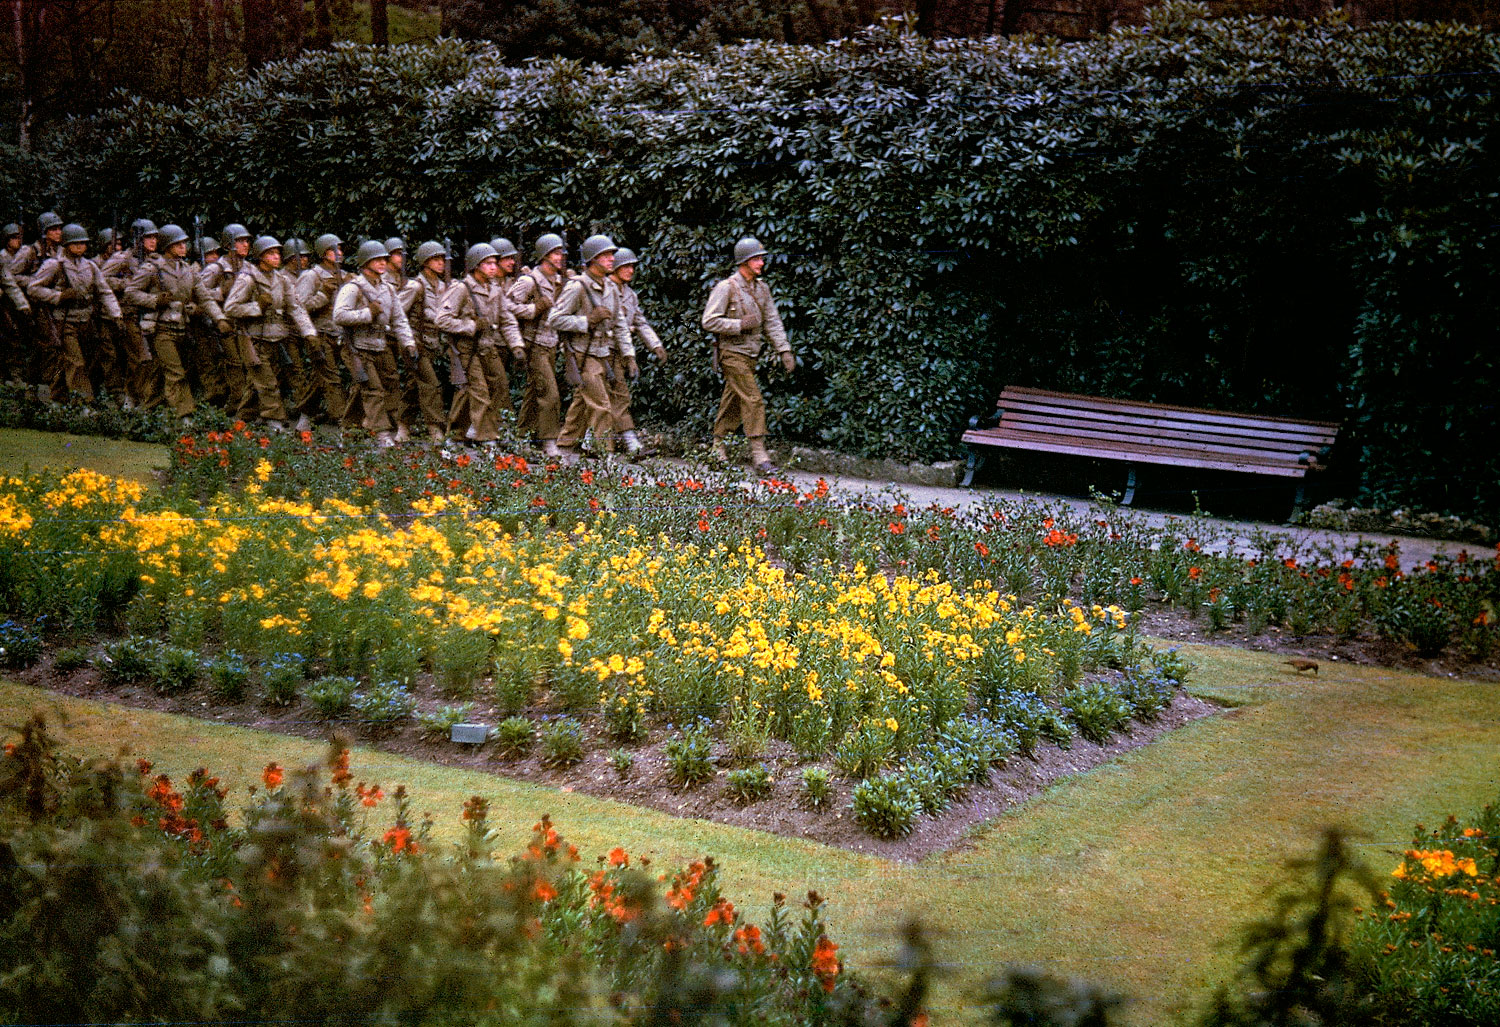 American troops in England before D-Day, May 1944.